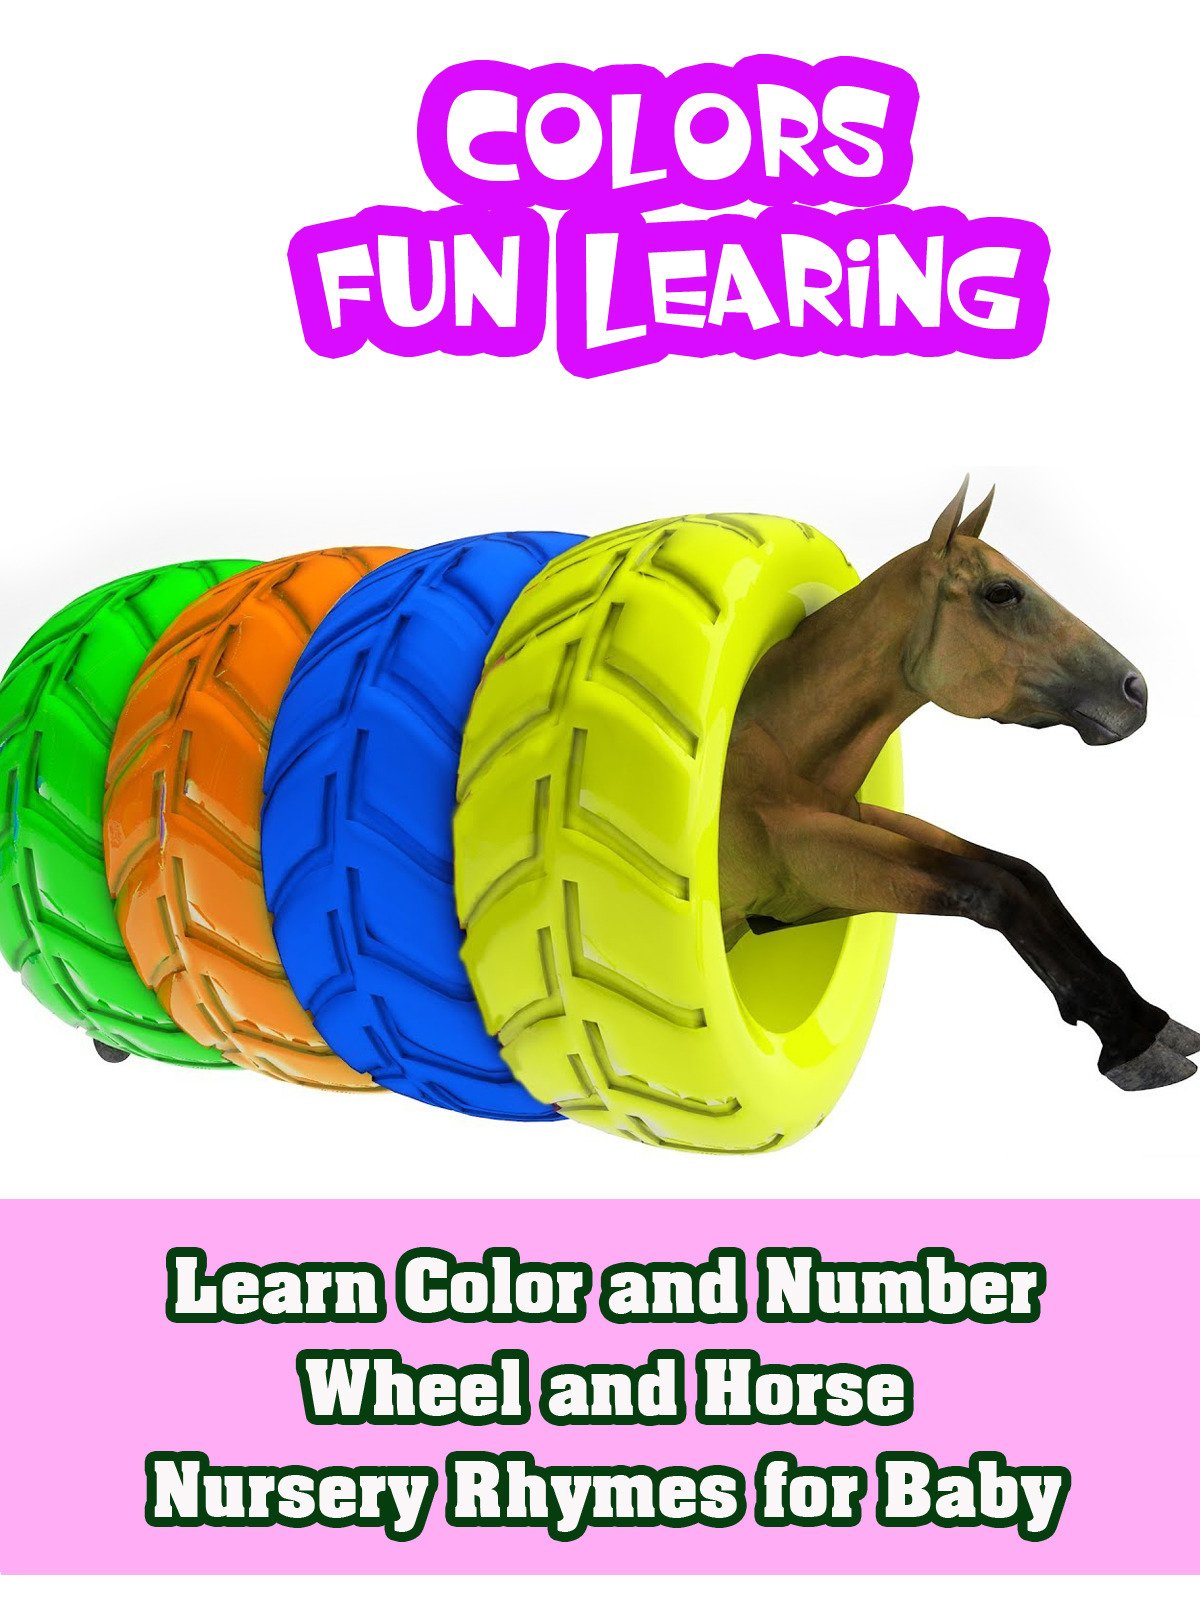 Learn Color and Number Wheel and Horse Nursery Rhymes for Baby